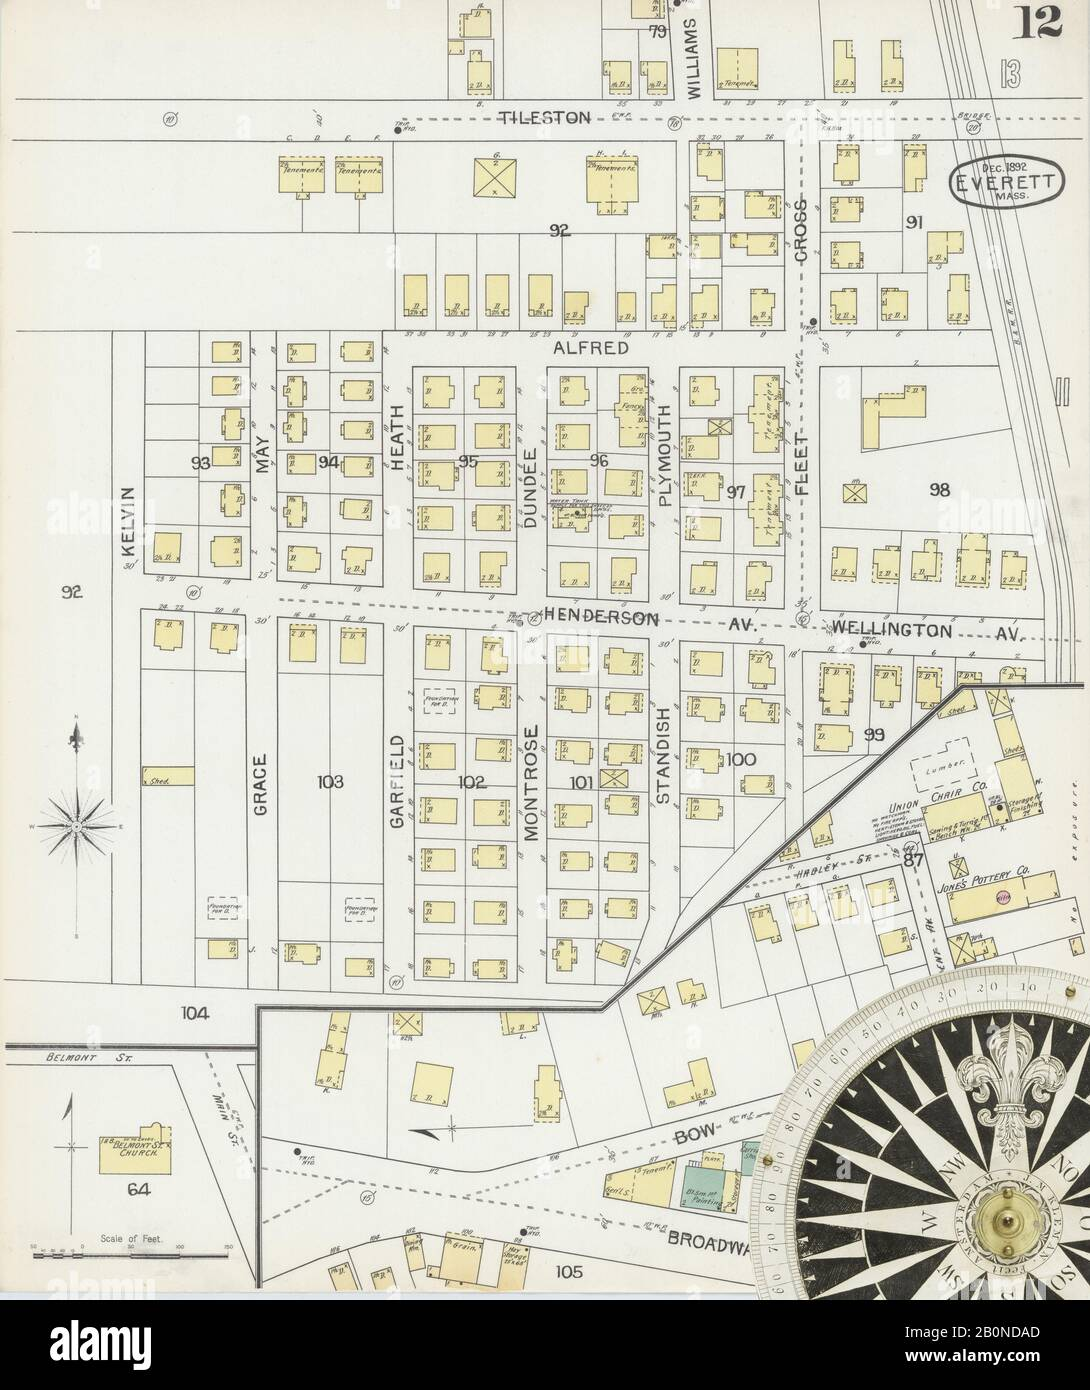 Image 12 of Sanborn Fire Insurance Map from Everett, Middlesex County, Massachusetts. Dec 1892. 16 Sheet(s), America, street map with a Nineteenth Century compass Stock Photo